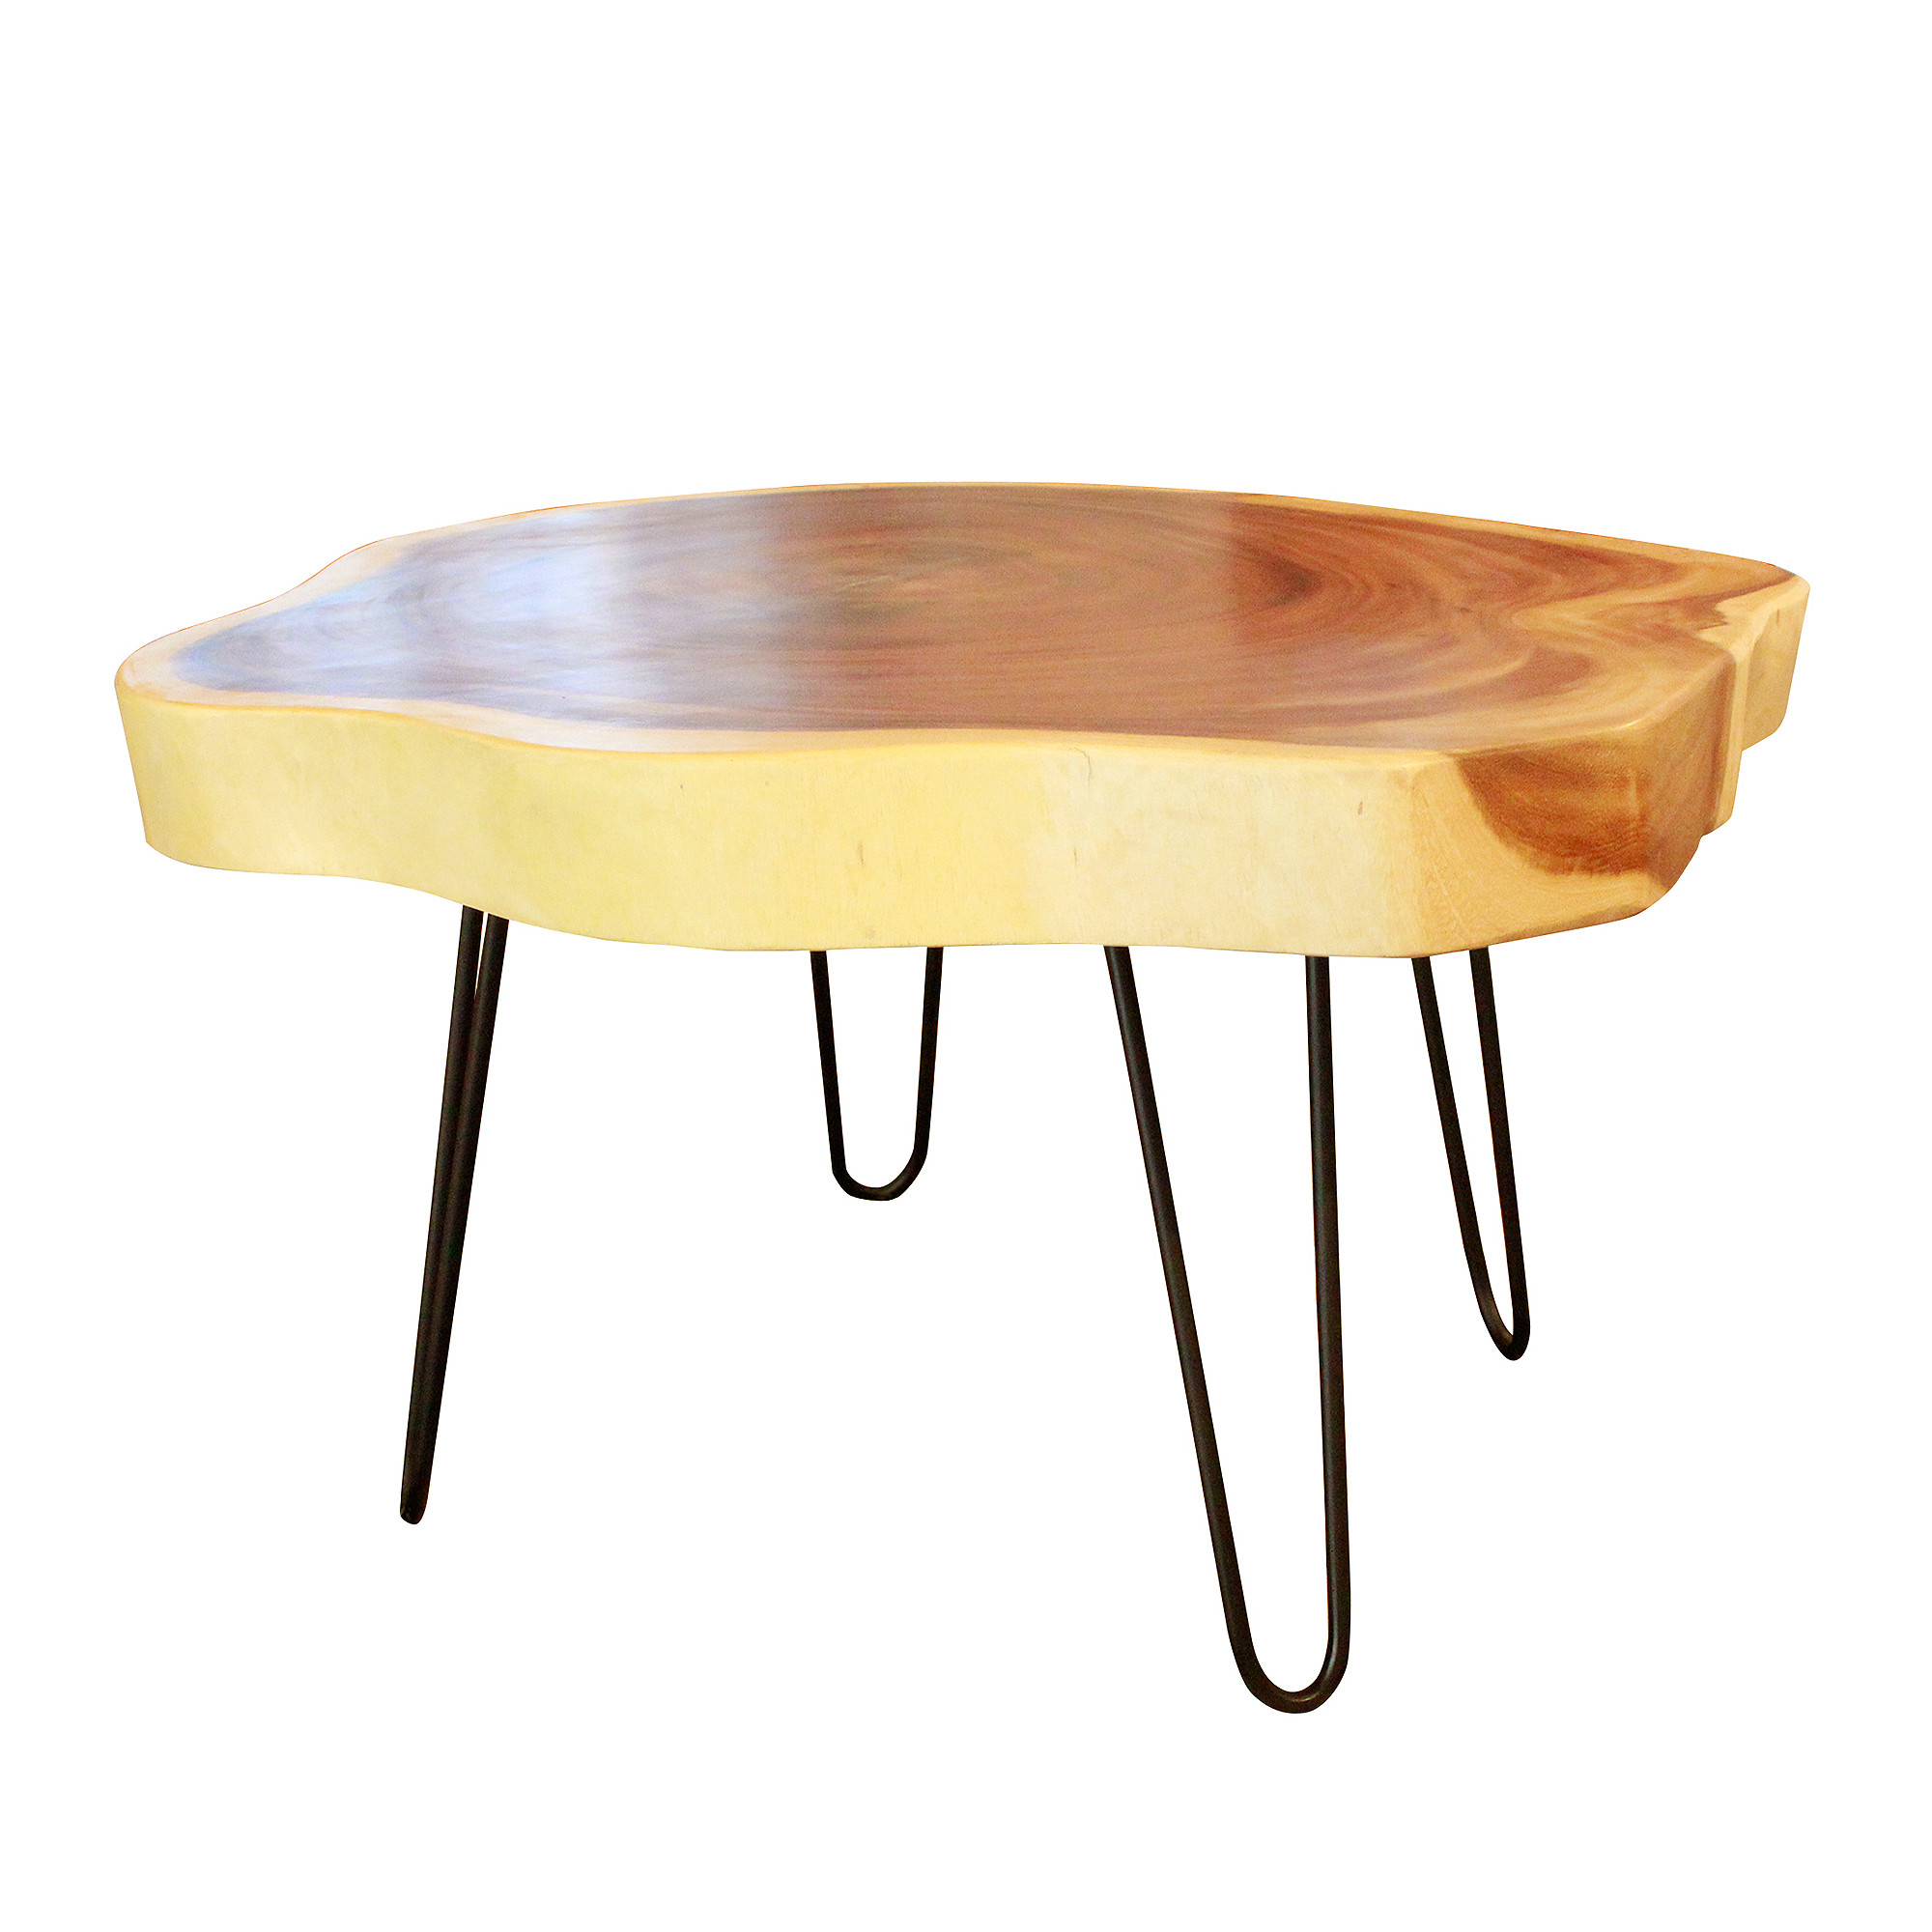 Round Coffee Tables At Homegoods: Round Coffee Table